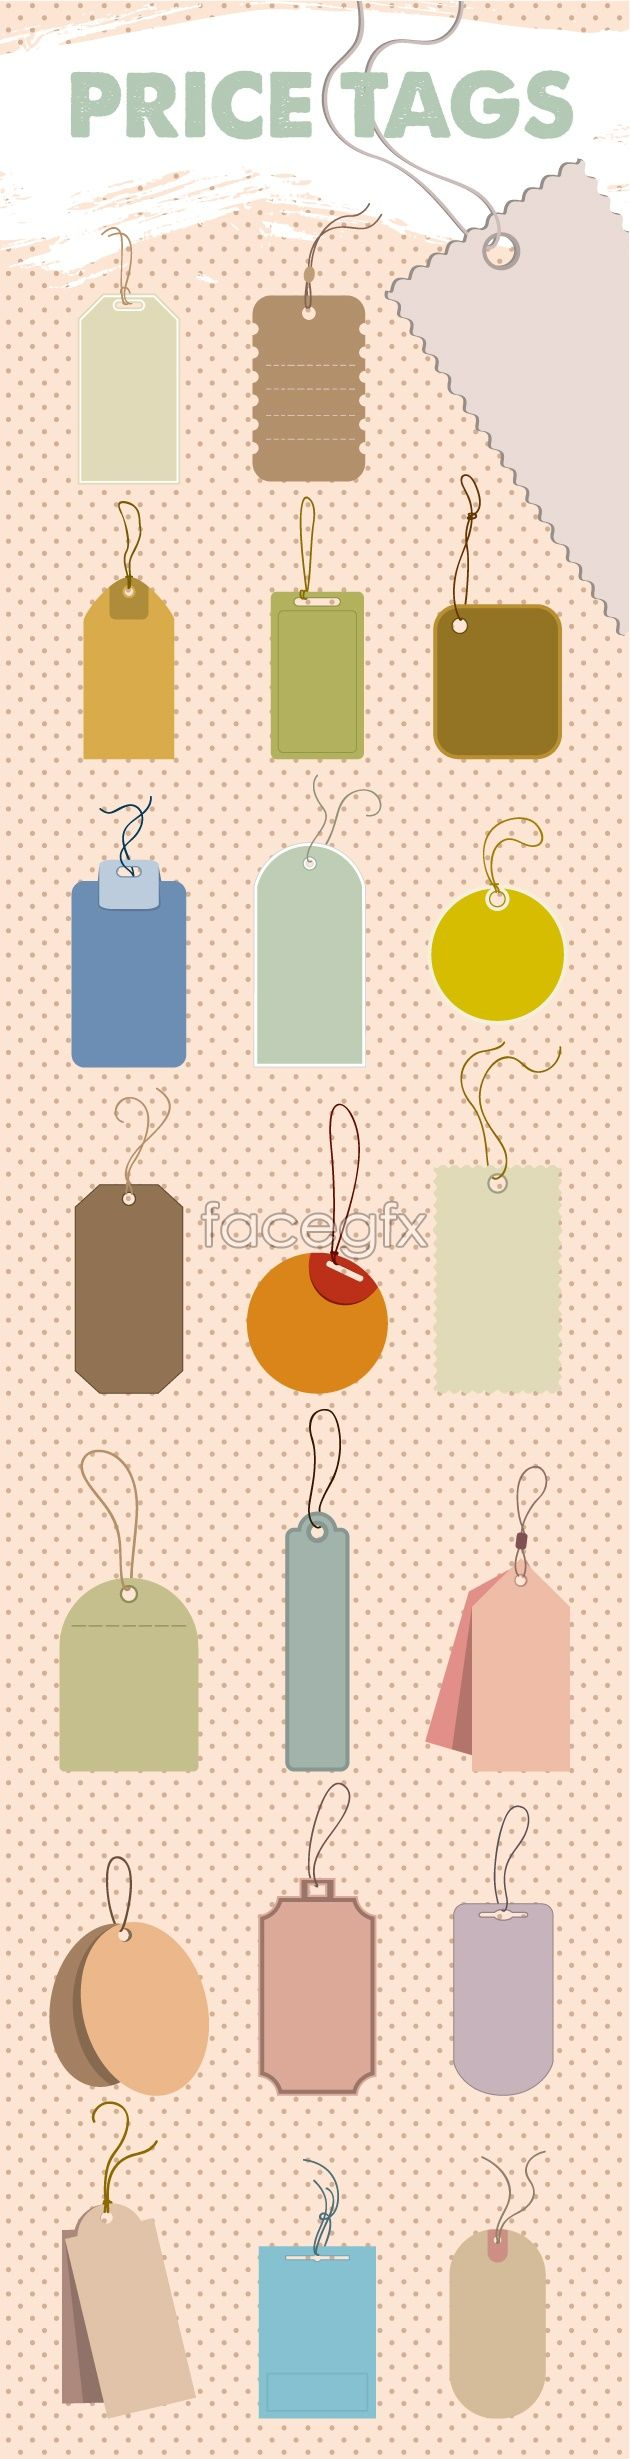 Cute dog tag template vector